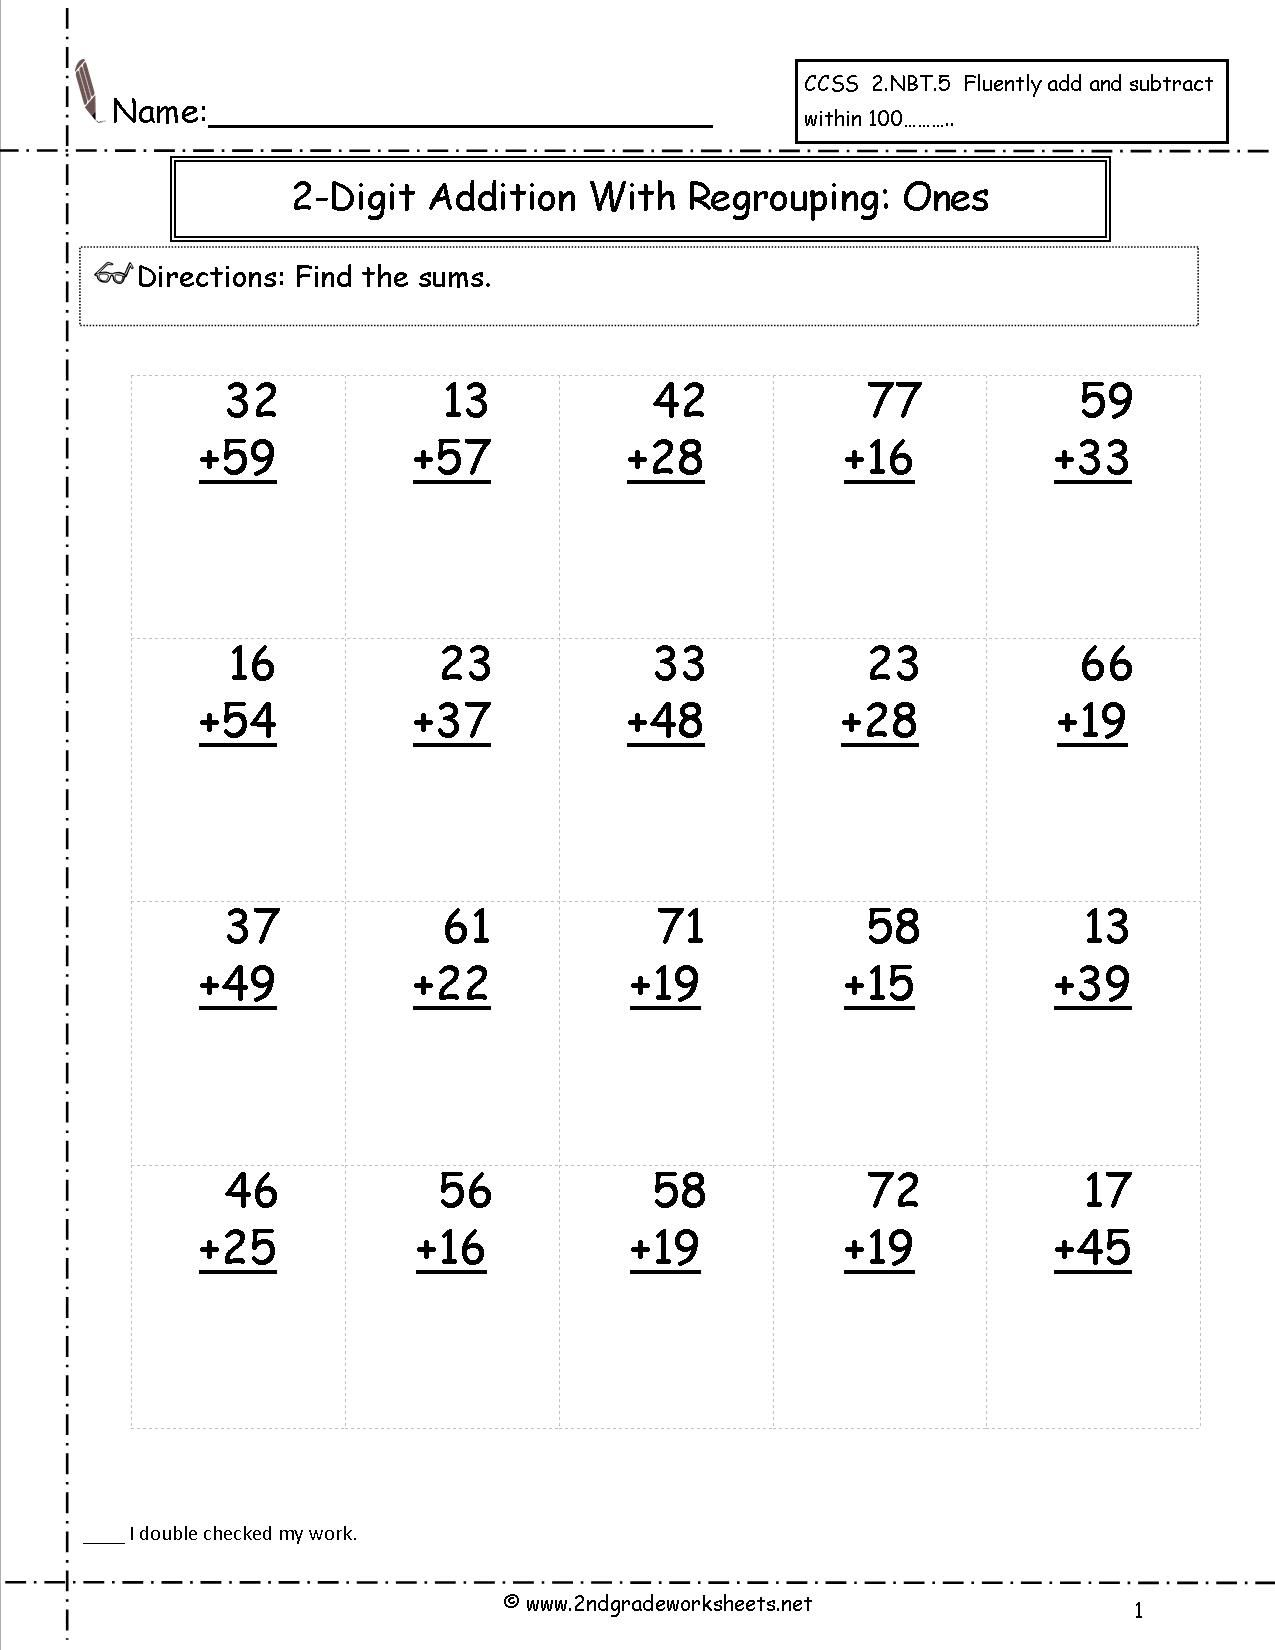 worksheet Subtraction With Regrouping Worksheets 2nd Grade two digit addition with regrouping ones to tens place worksheet worksheet